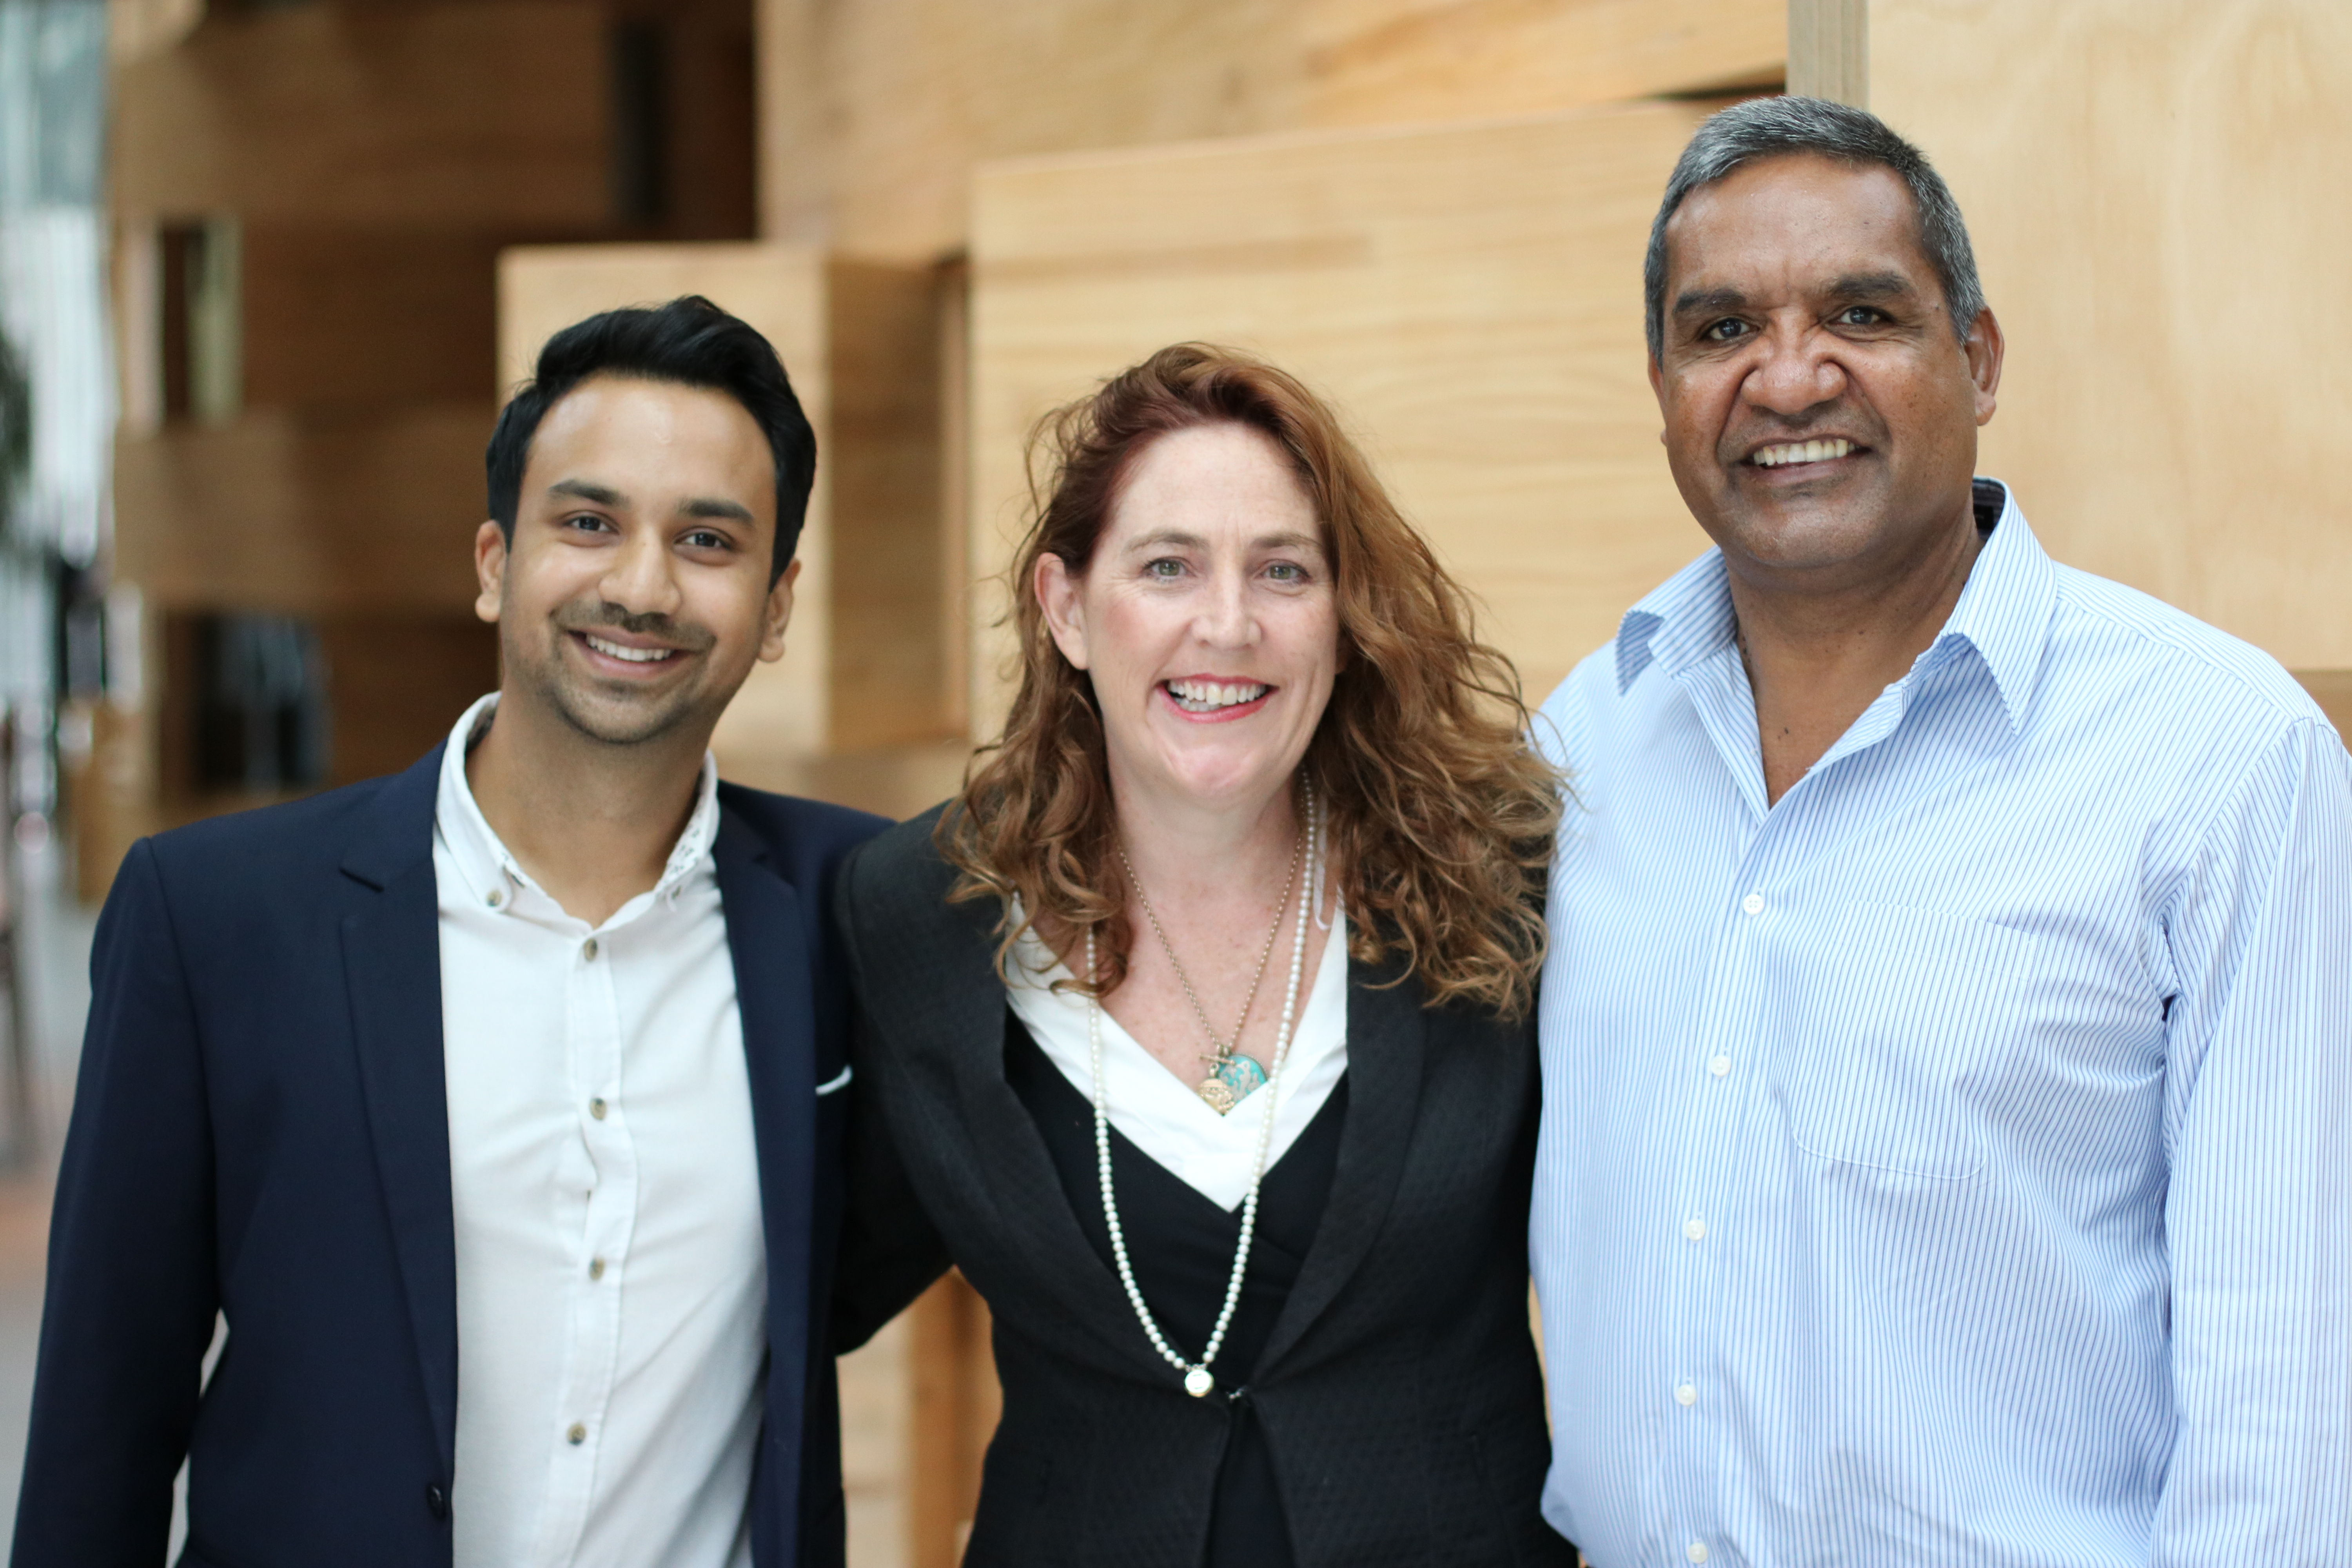 From left, Arjun Bisen, Assoc Prof Bronwen Dalton, and Dean Jarrett